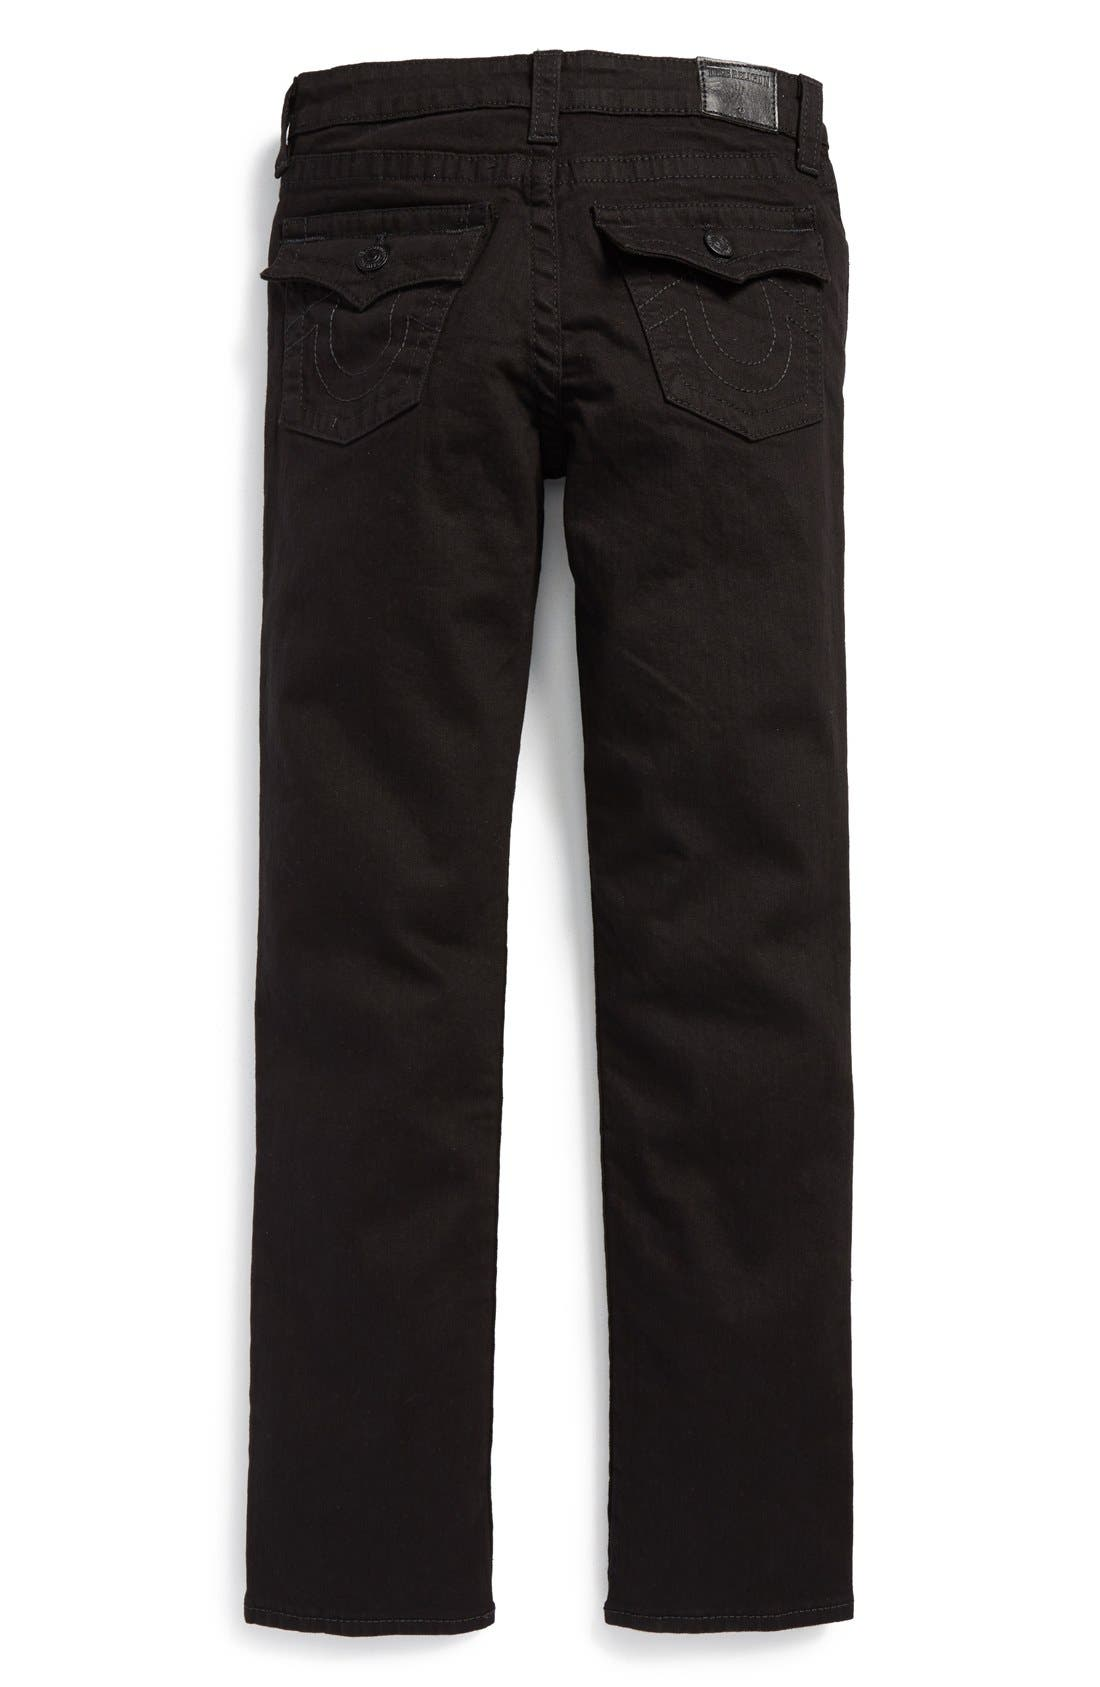 Alternate Image 2  - True Religion Brand Jeans 'Geno' Relaxed Slim Fit Jeans (Big Boys)